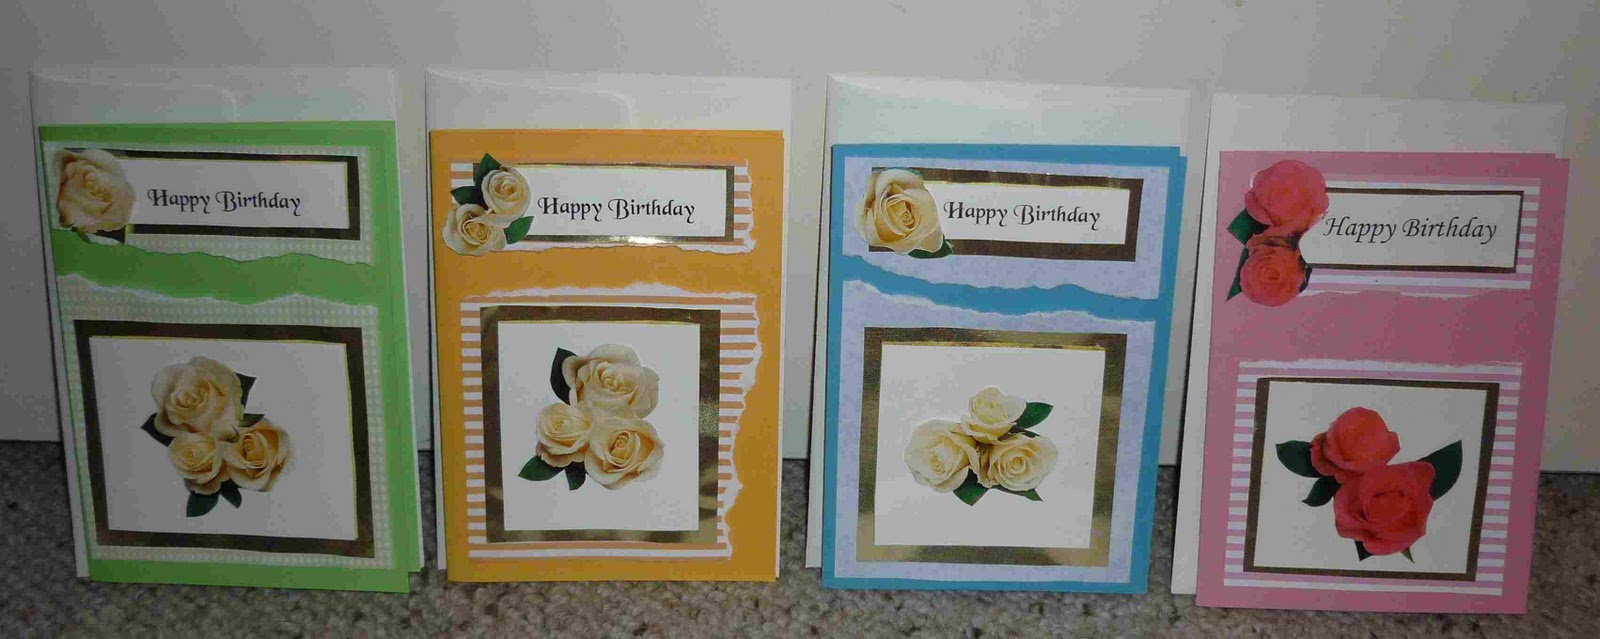 Simpleliving Make Your Own Birthday Cards – Make a Birthday Card with Your Own Photo